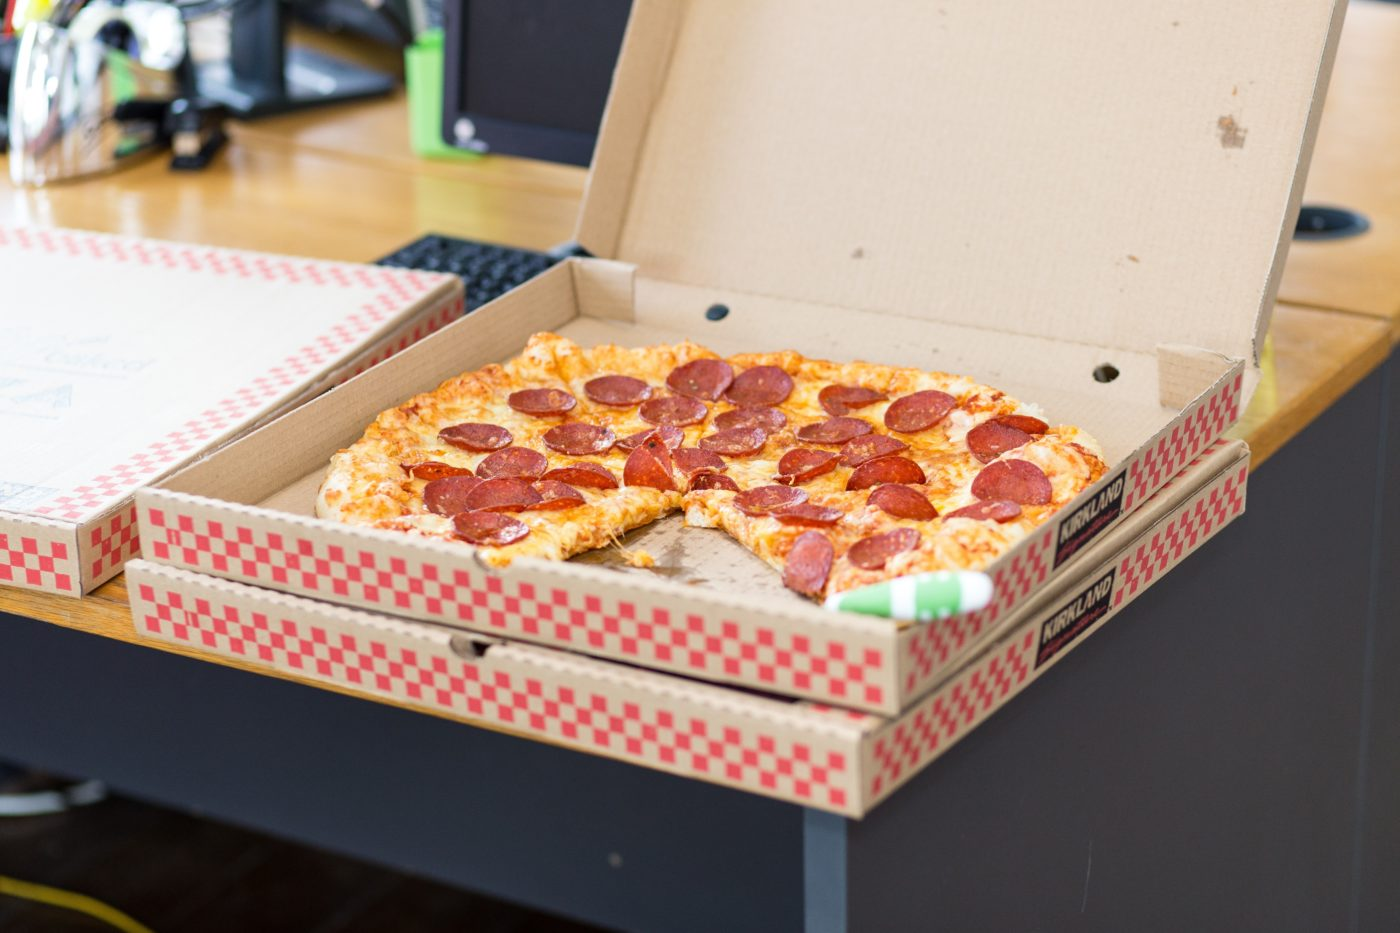 baked box cheese 280453 - Food Delivery to Askari 11: Places You Could Be Ordering From